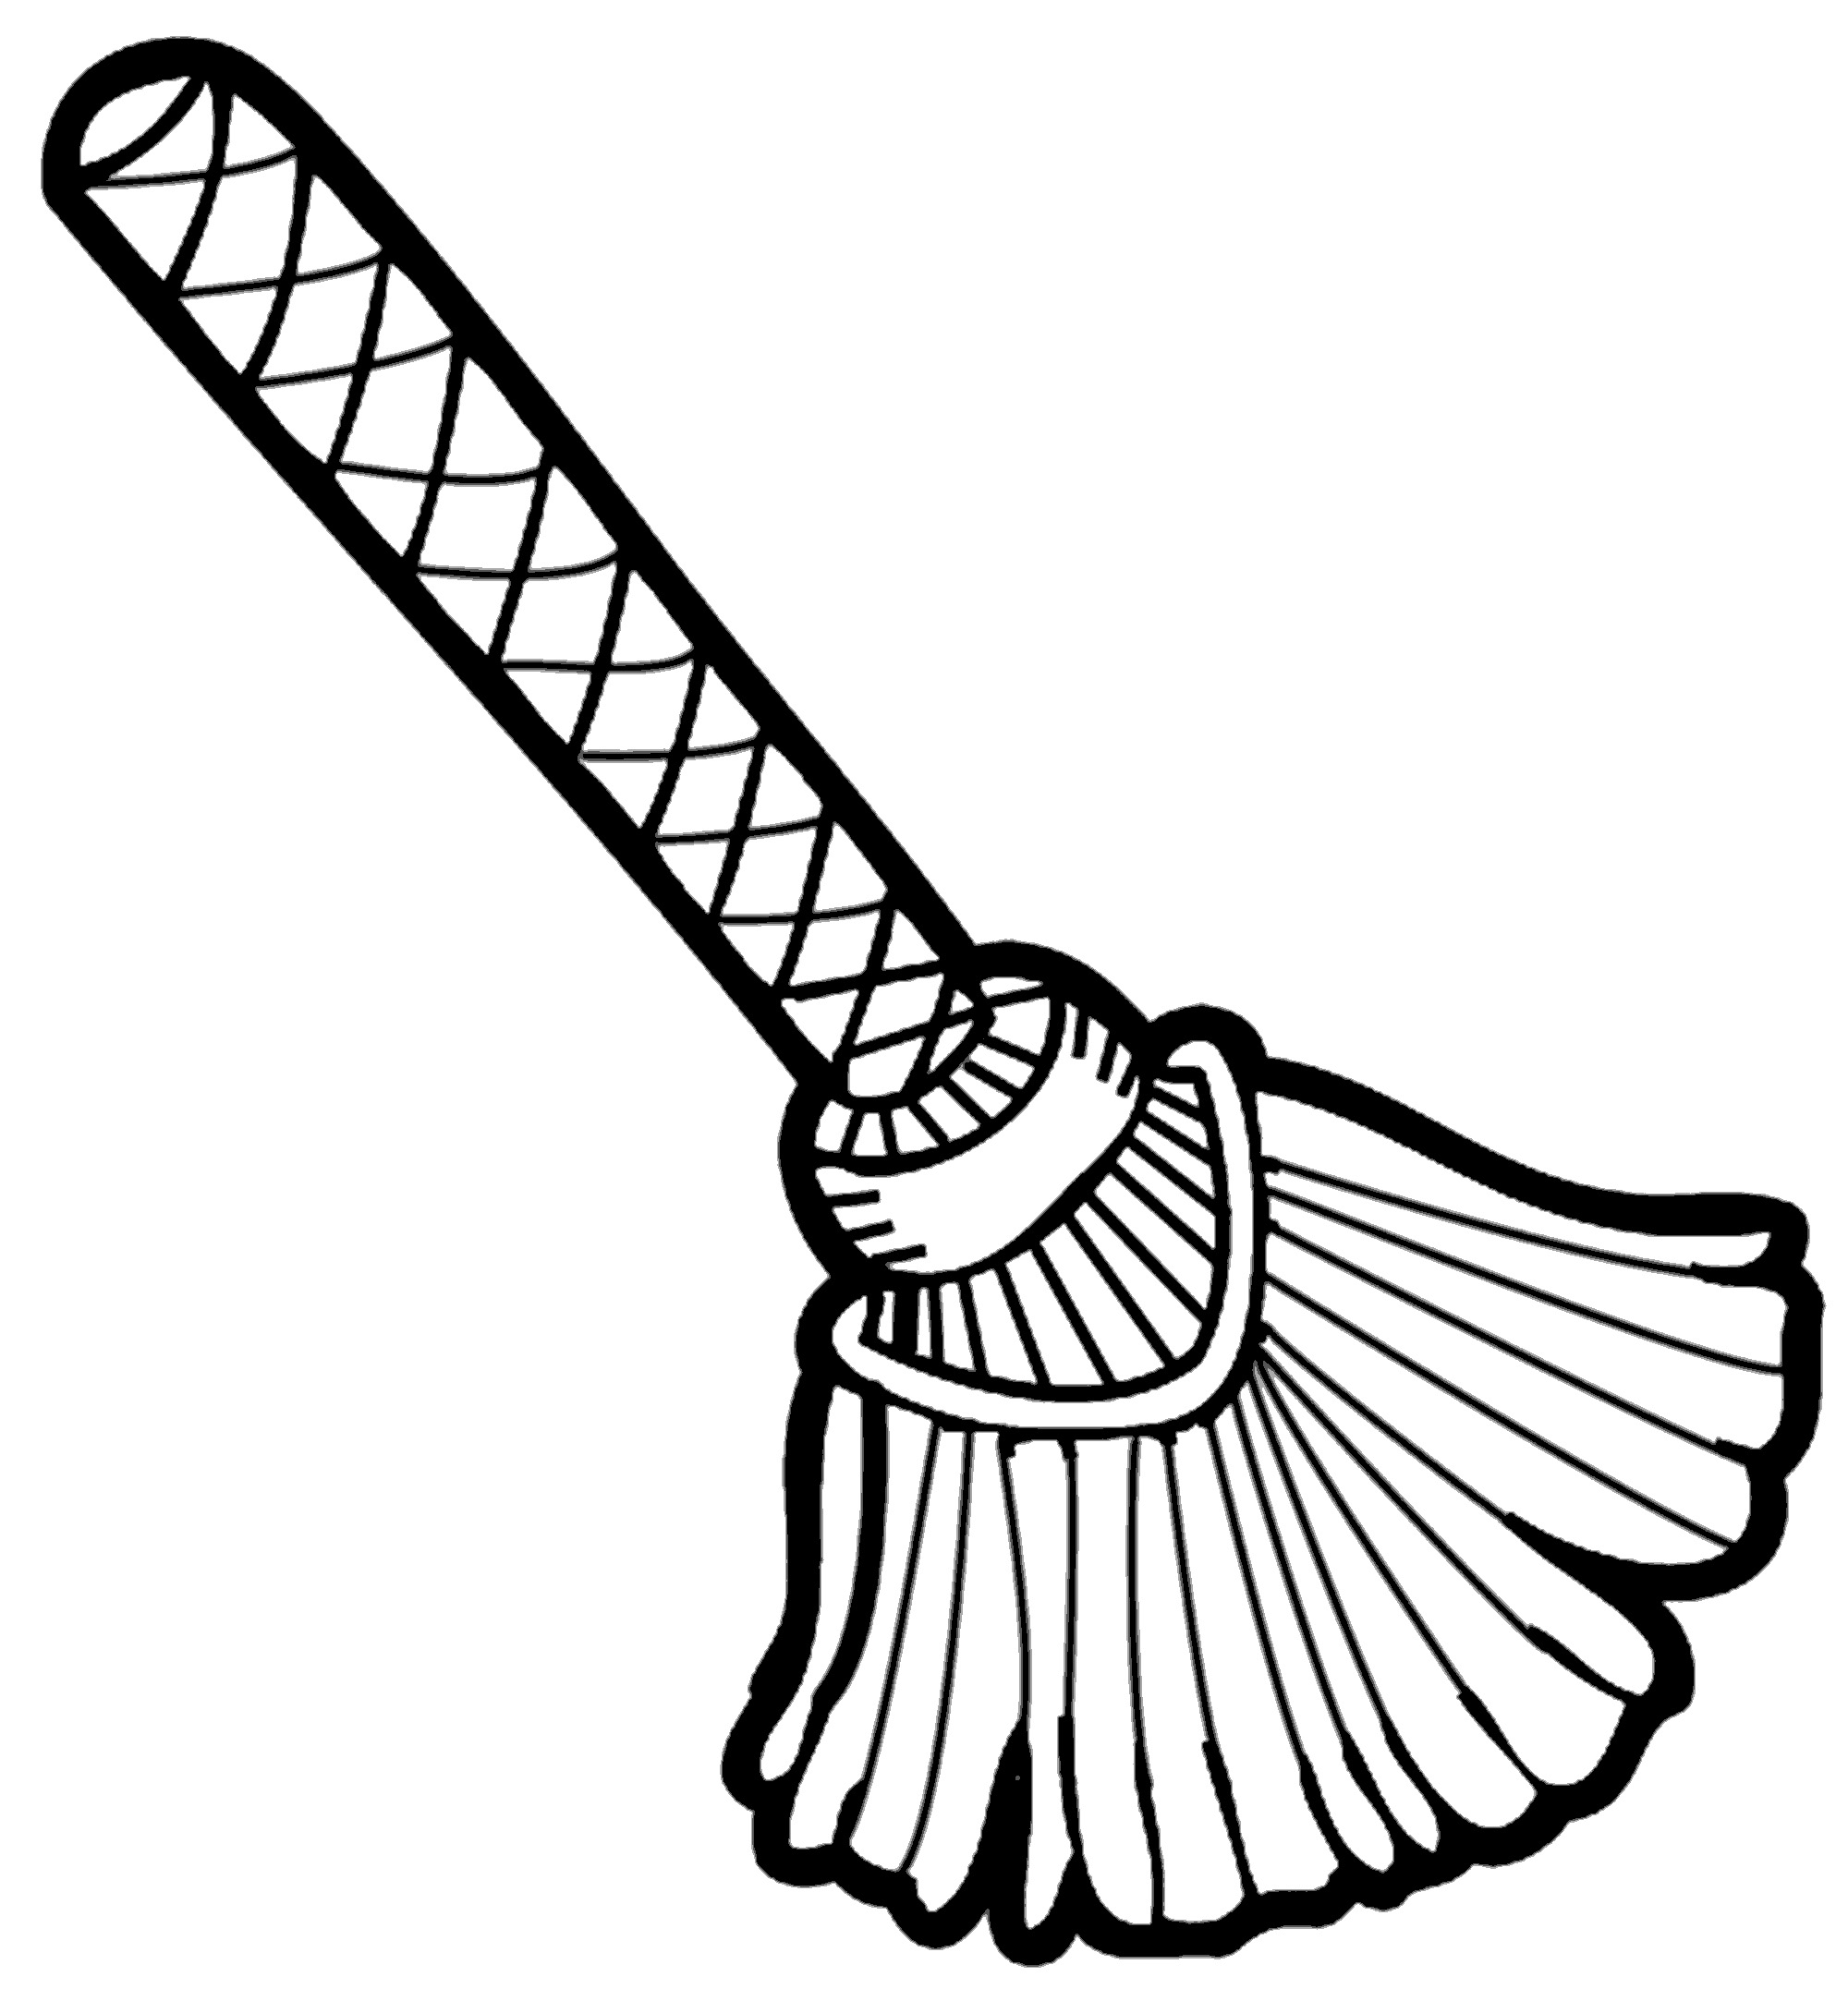 Broom dr clipart clip transparent stock Free Dust Pan Cliparts, Download Free Clip Art, Free Clip Art on ... clip transparent stock